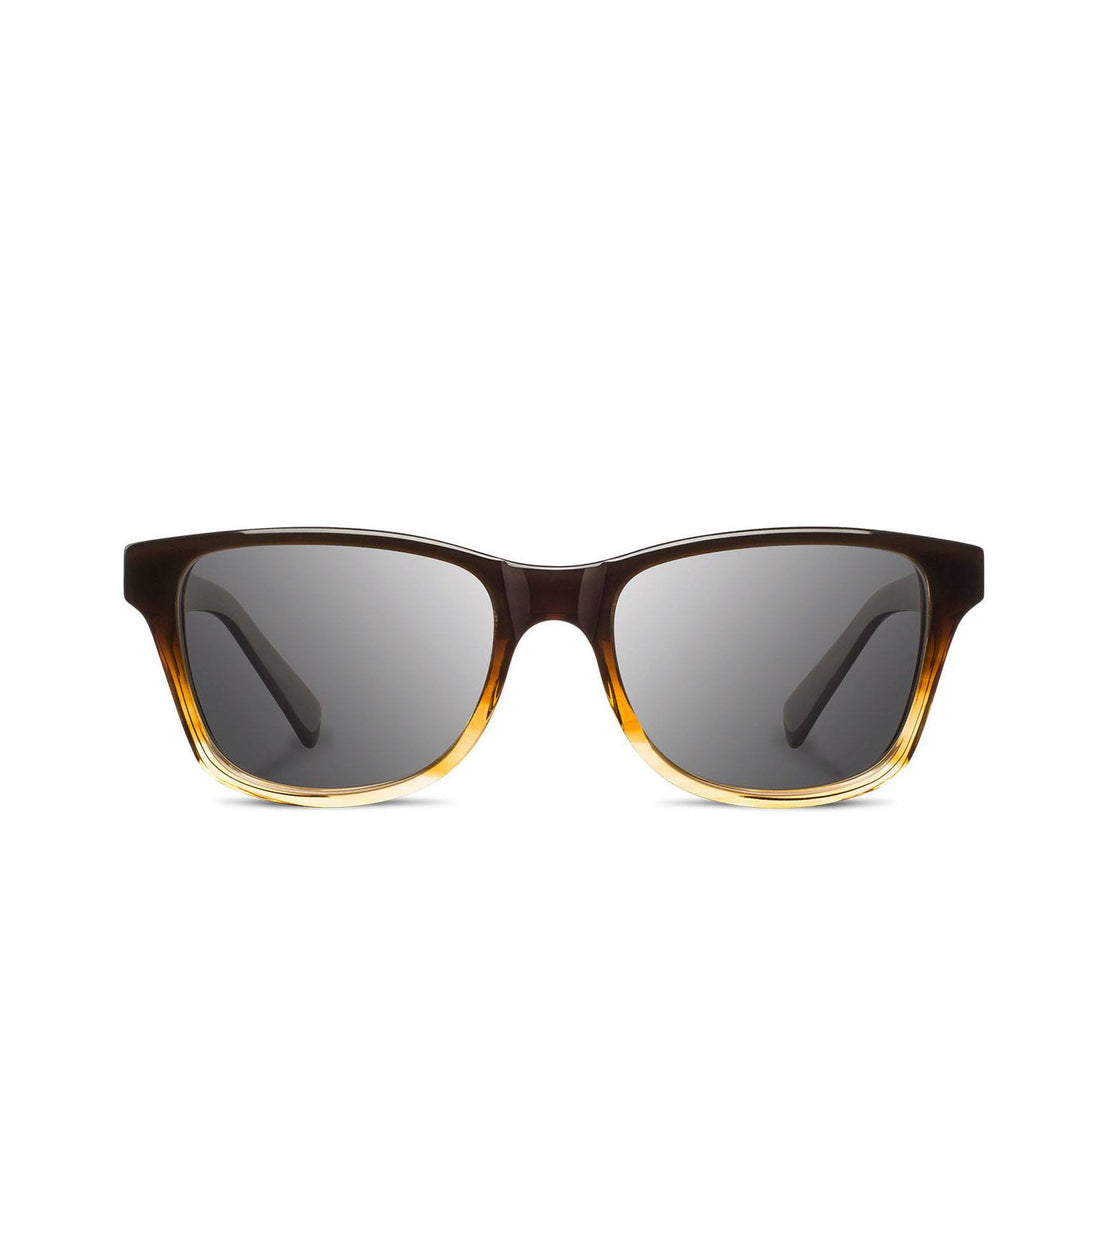 Shwood Canby - Accessories: Eyewear - Iron and Resin